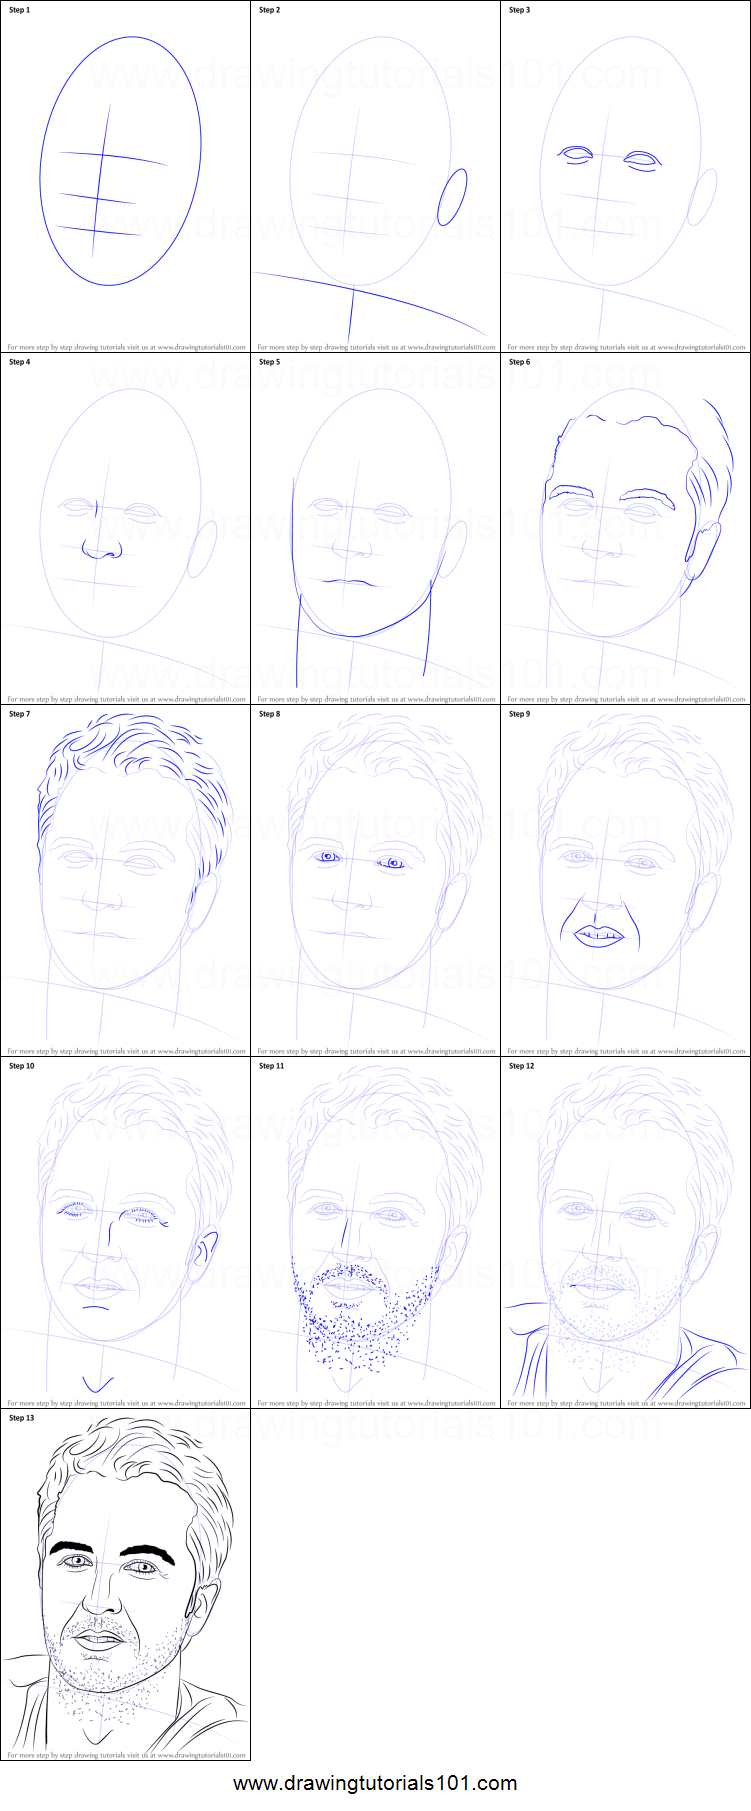 how to draw brian step by step easy